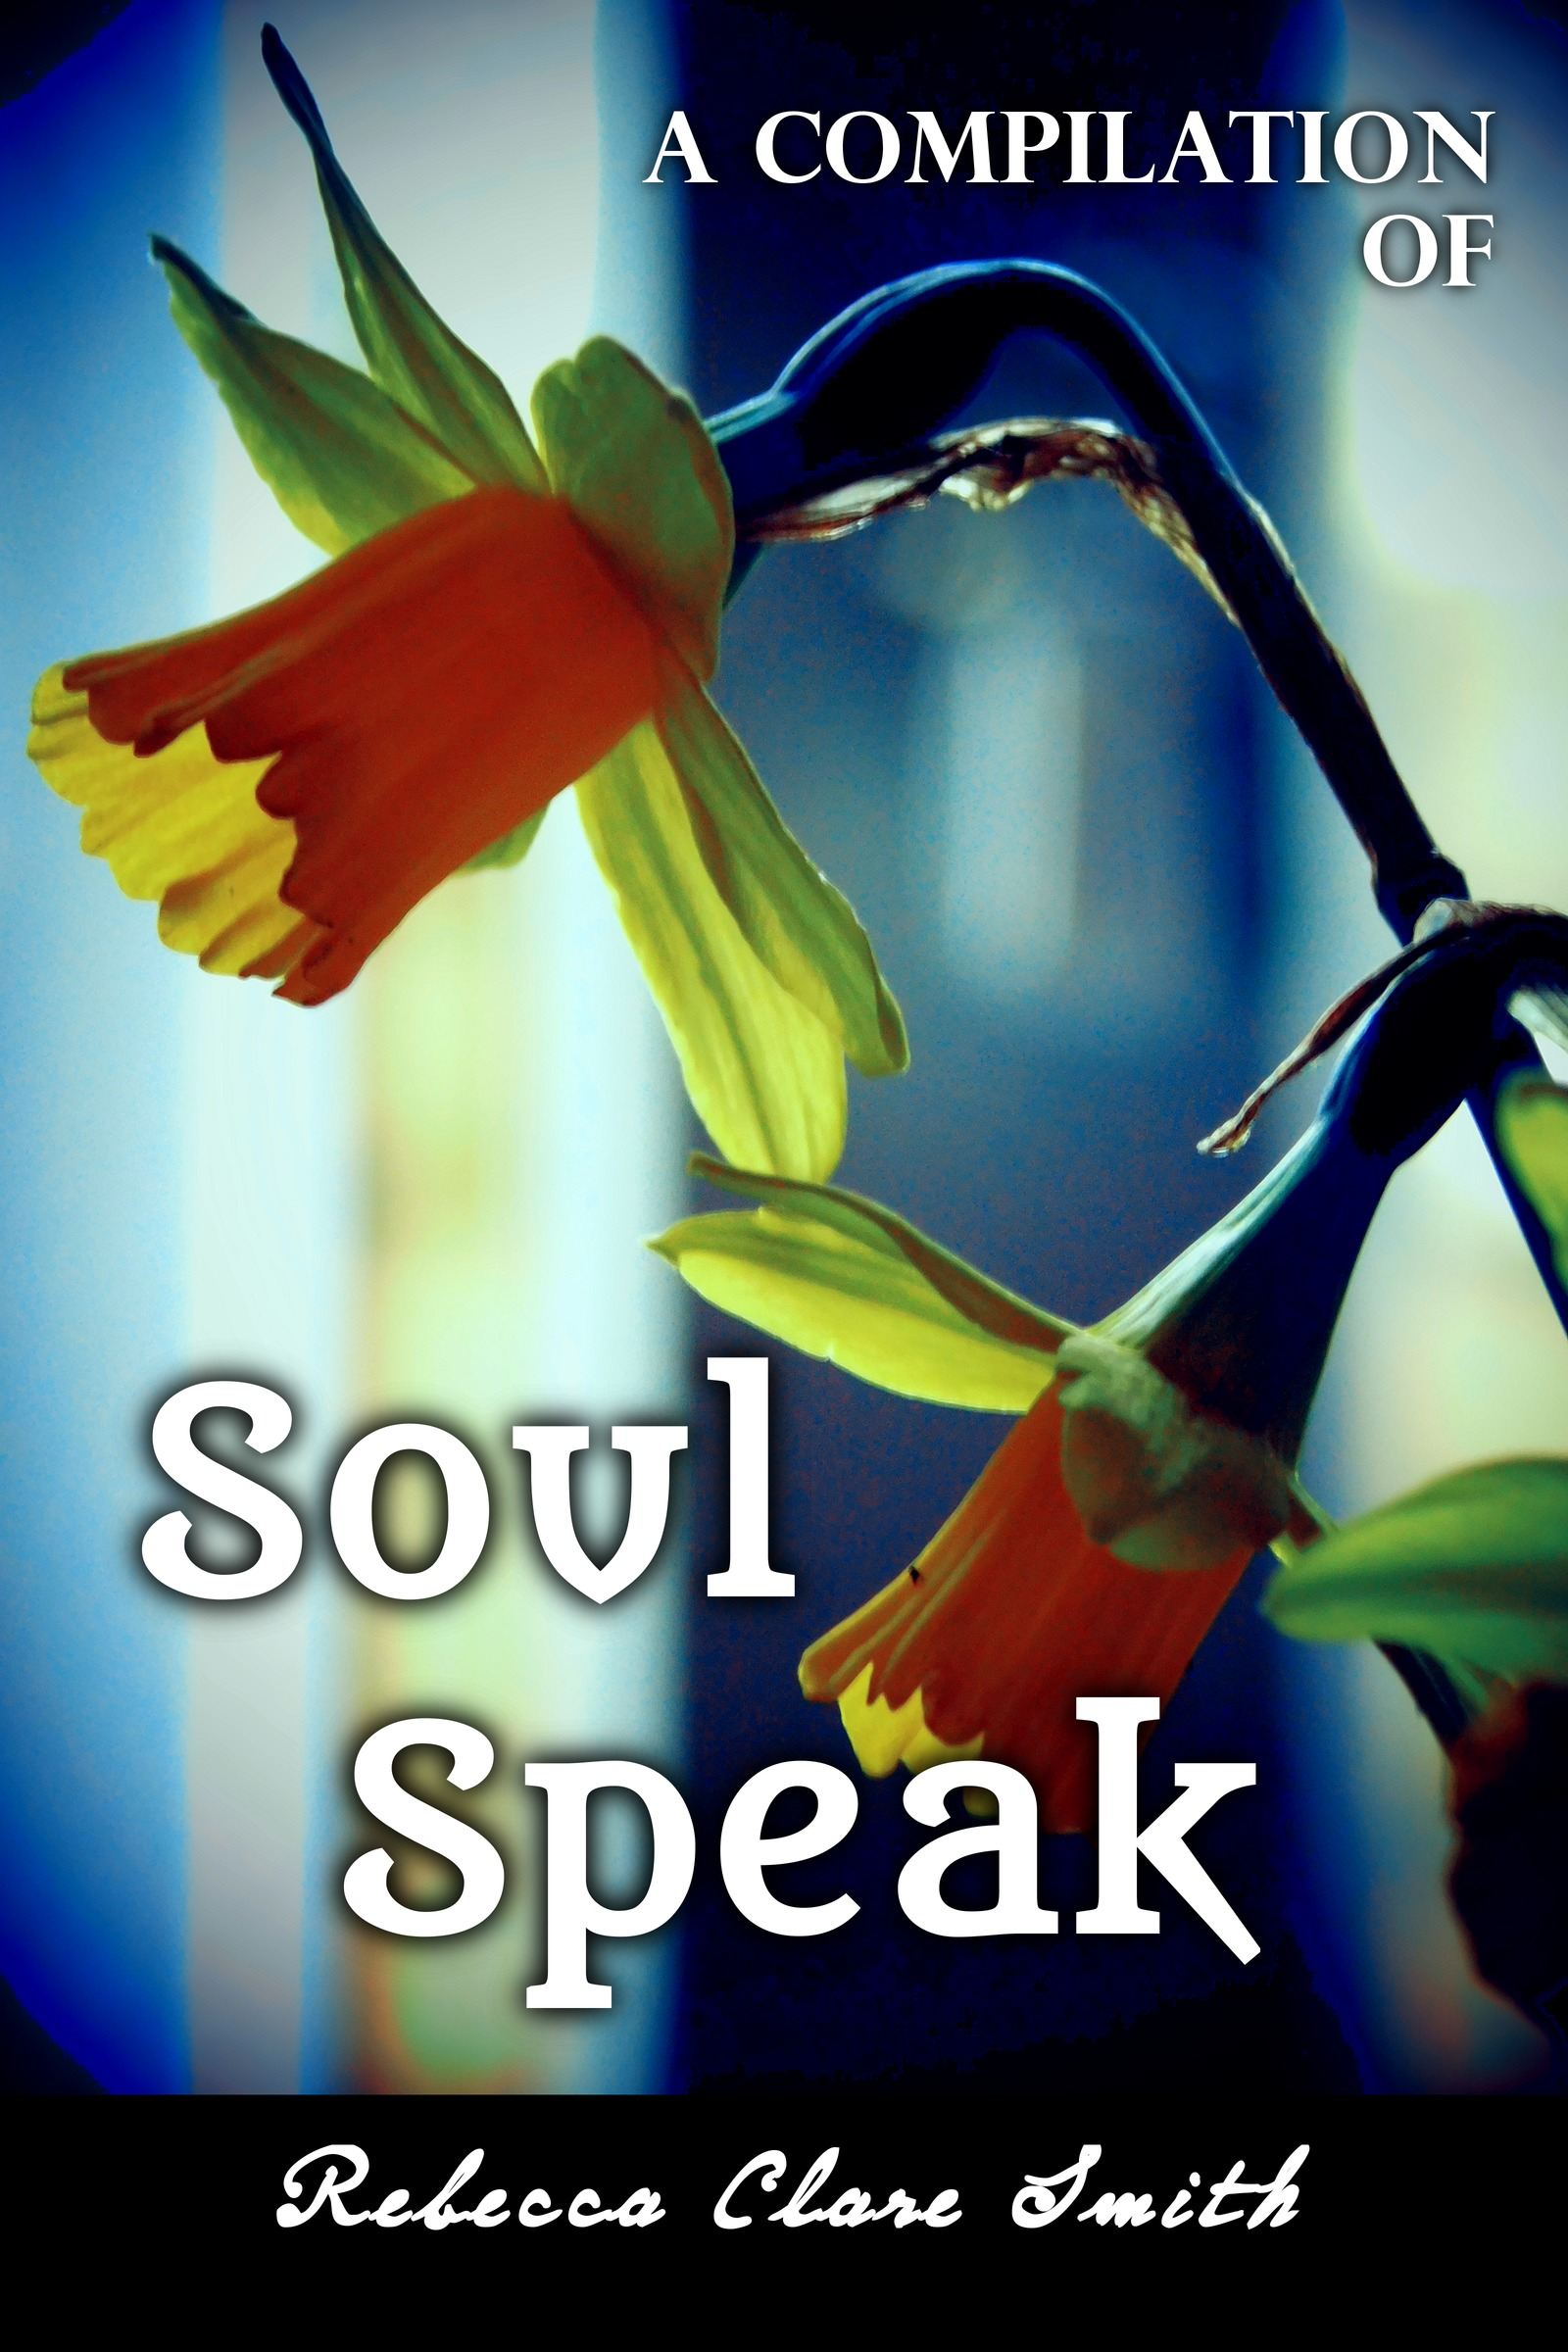 View A Compilation Of Soul Speak